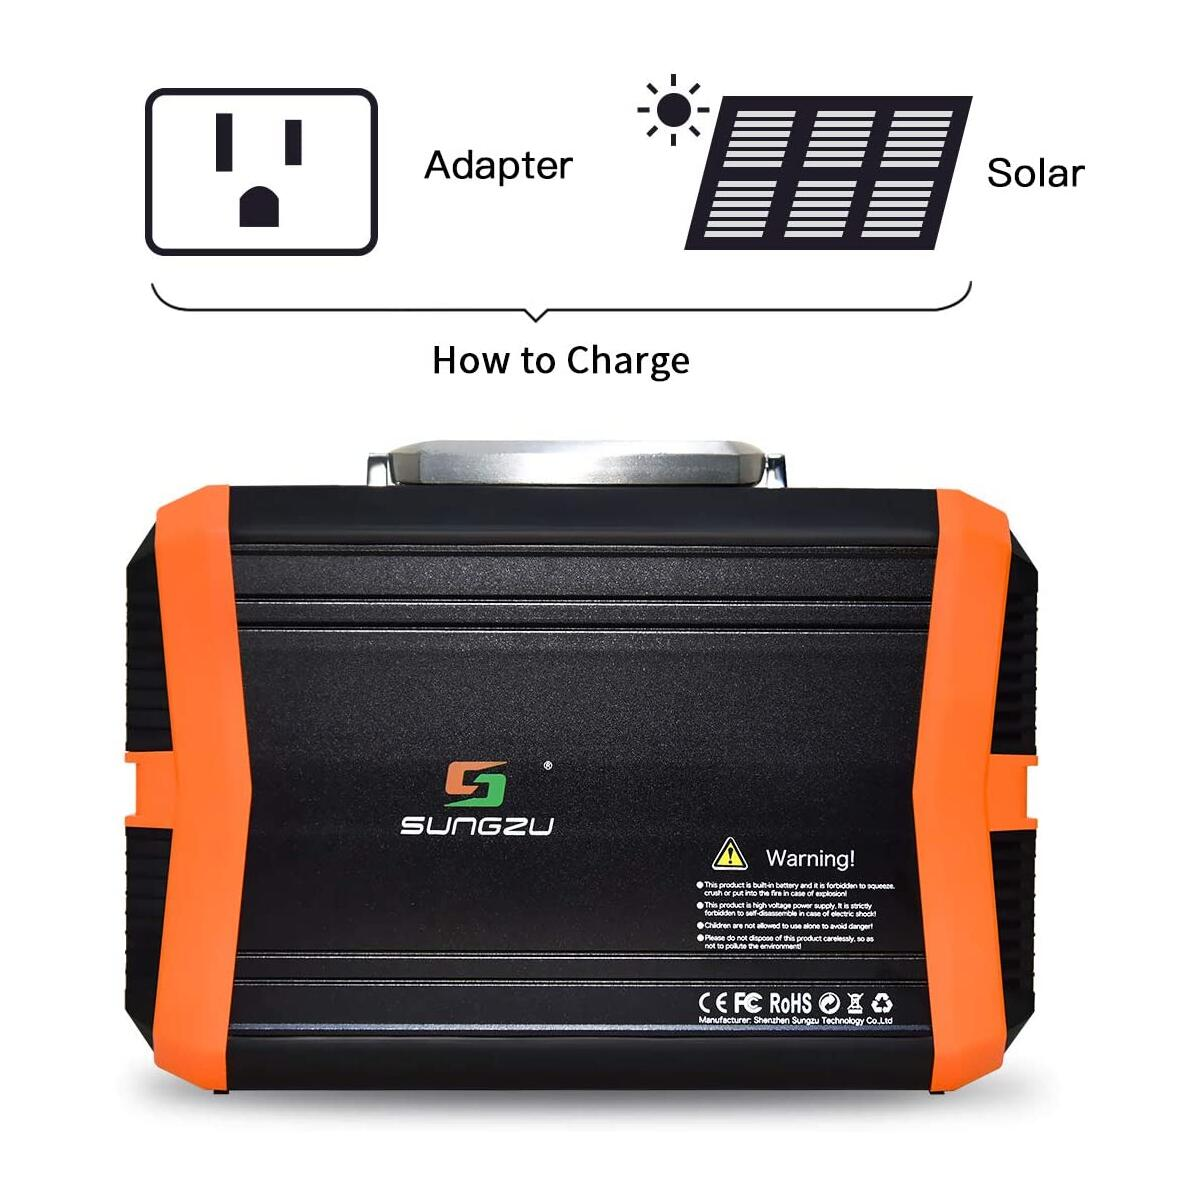 SUNGZU Portable Generators Solar Powered Station 300W Generator 11.1V/31.2Ah 350Wh CPAP Battery Pack Solar Panel Charged Power Supply for Camping Travel & Home Outages